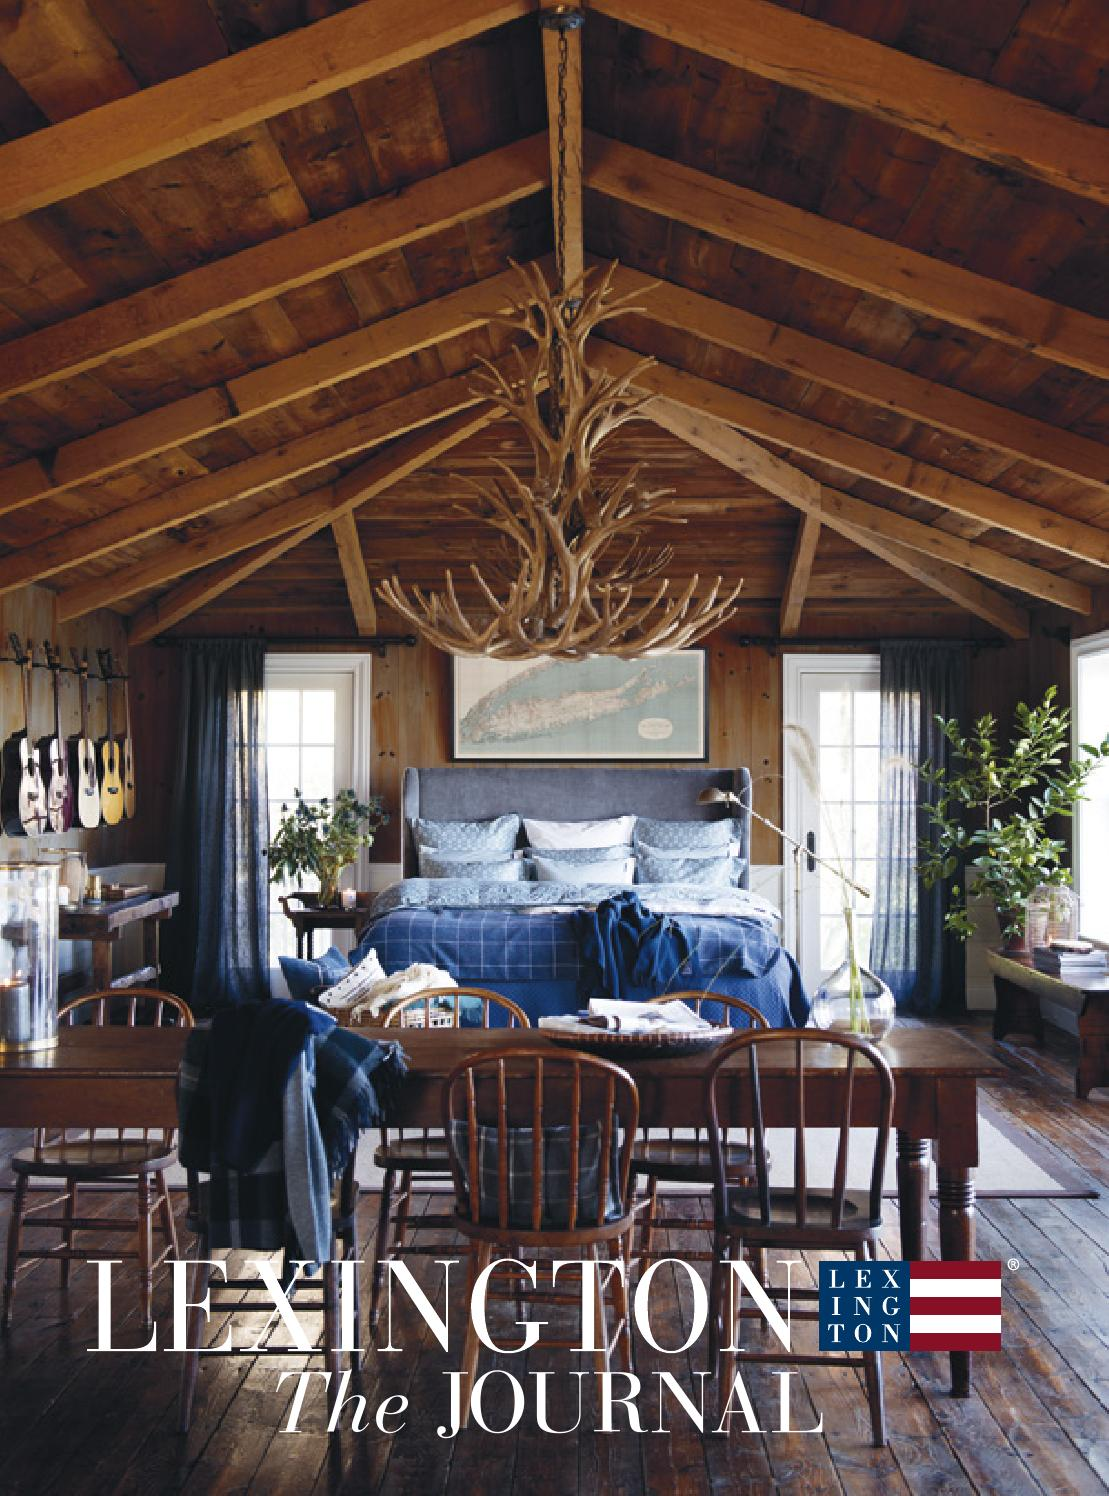 lexington fall home catalog by lexington company issuu. Black Bedroom Furniture Sets. Home Design Ideas